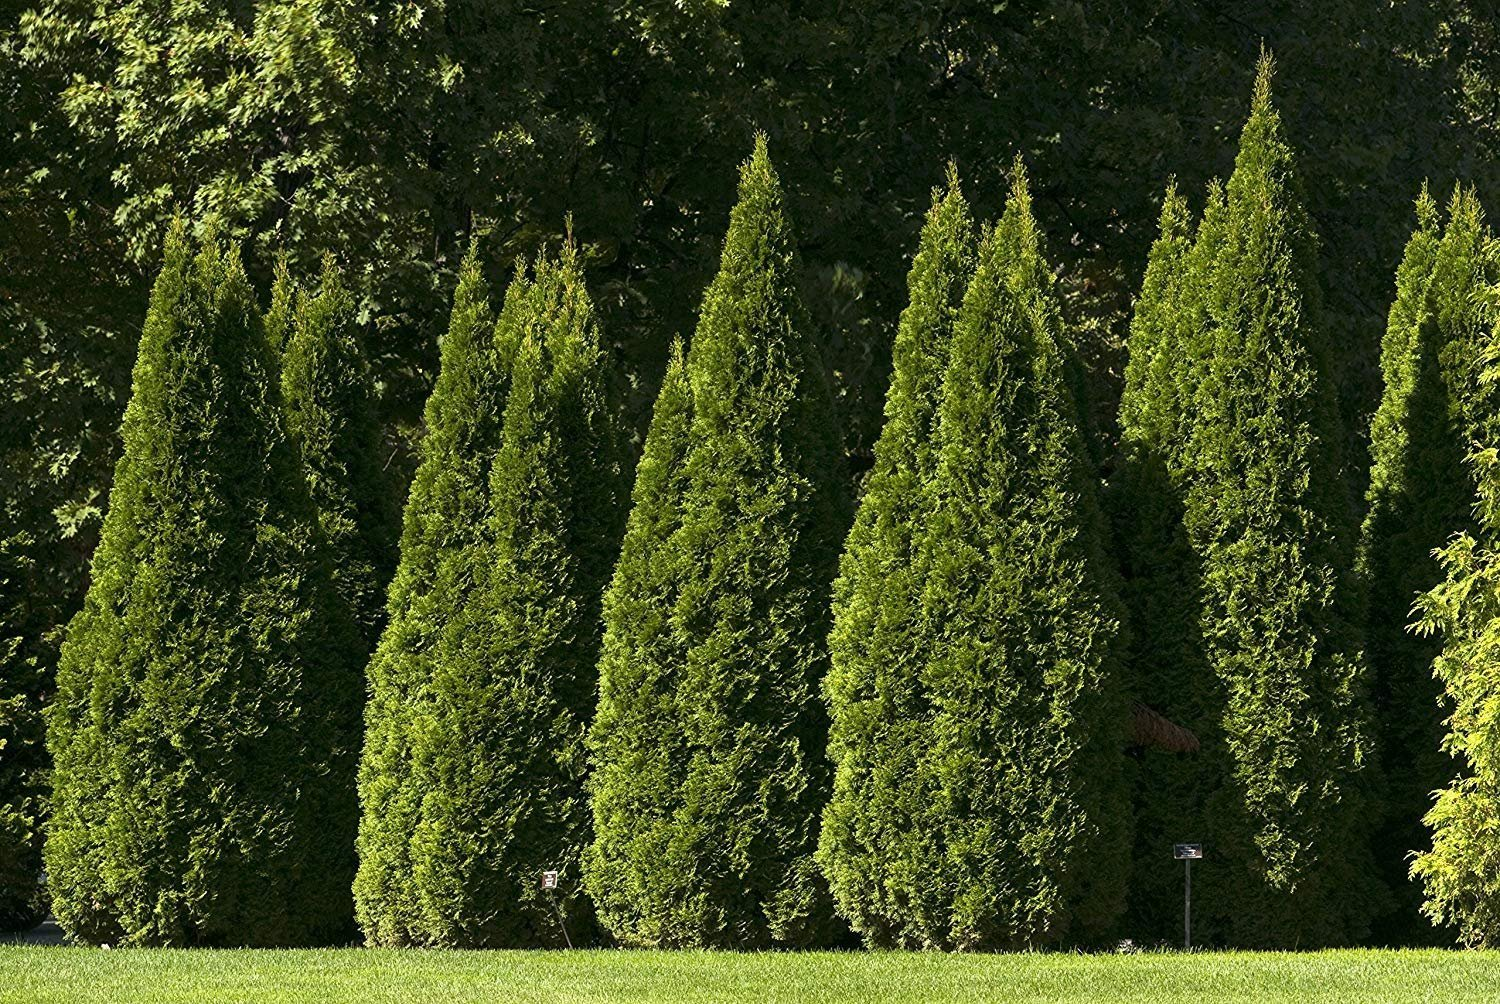 Thuja Emerald Green Arborvitae - 60 Live Plants - 2'' Pot Size - Evergreen Privacy Tree by Florida Foliage (Image #2)